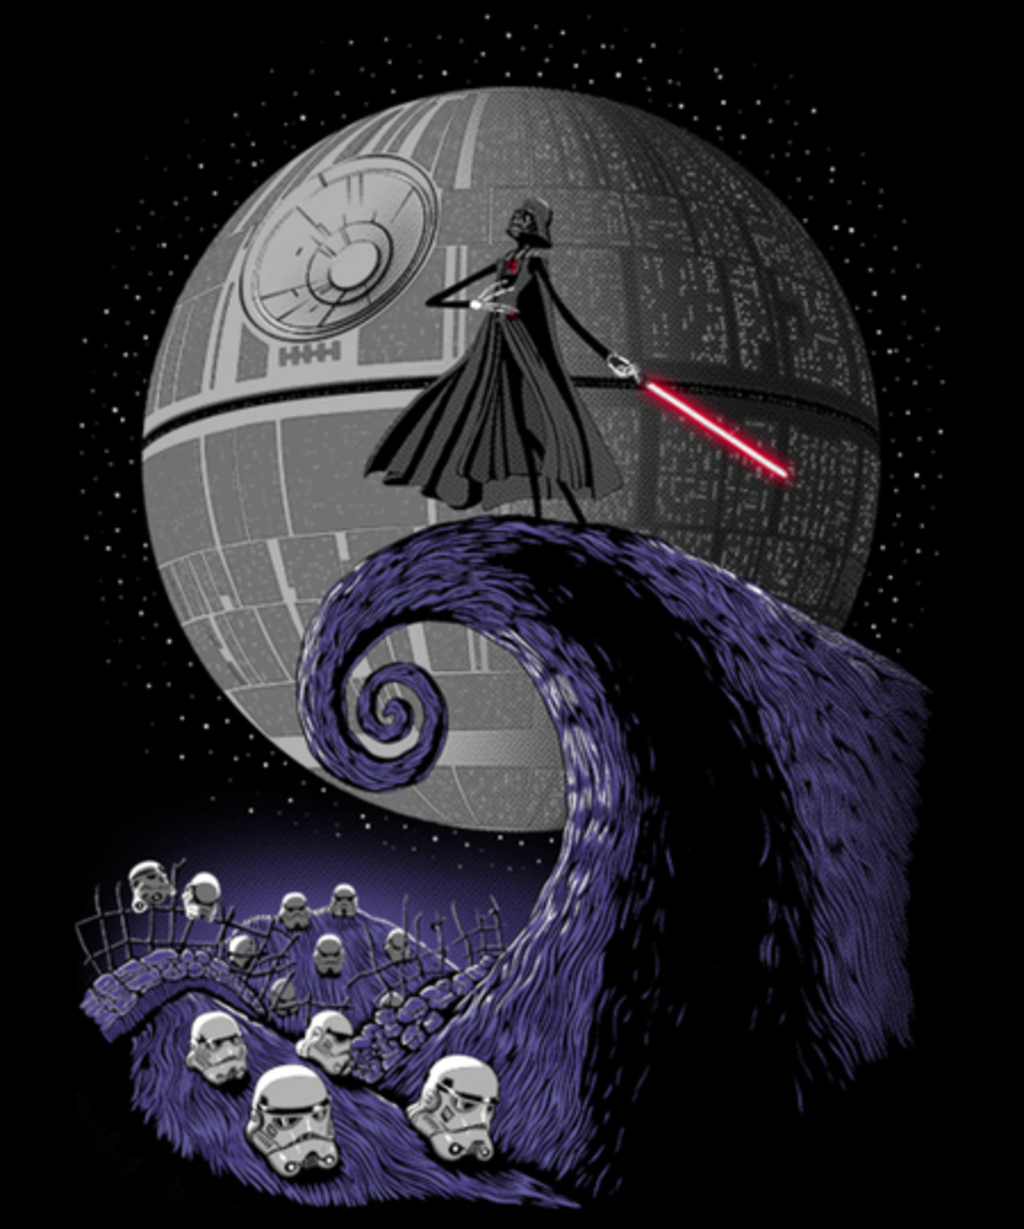 Qwertee: The Nightmare Before Empire